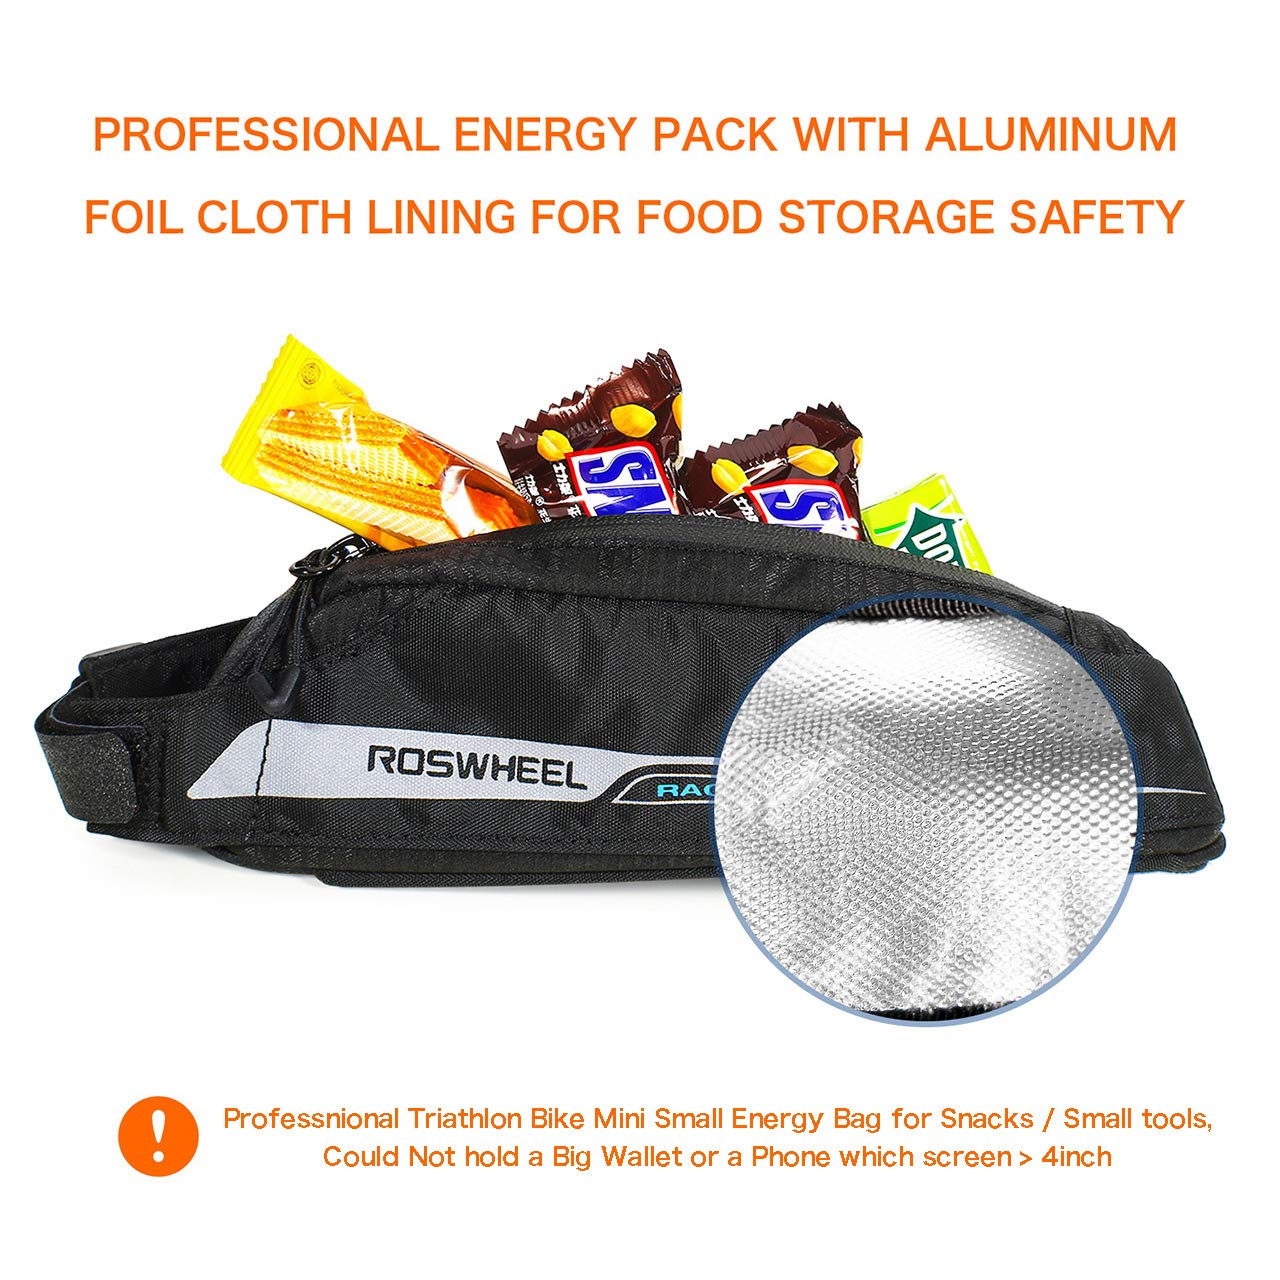 FlexDin Bicycle Frame Energy Bag, Road Racing/Touring / Triathlon Aerodynamic Bike Top Tube Cycling Fuel Bag Food Pouch Waterproof 420D 0.4L Black by FlexDin (Image #4)